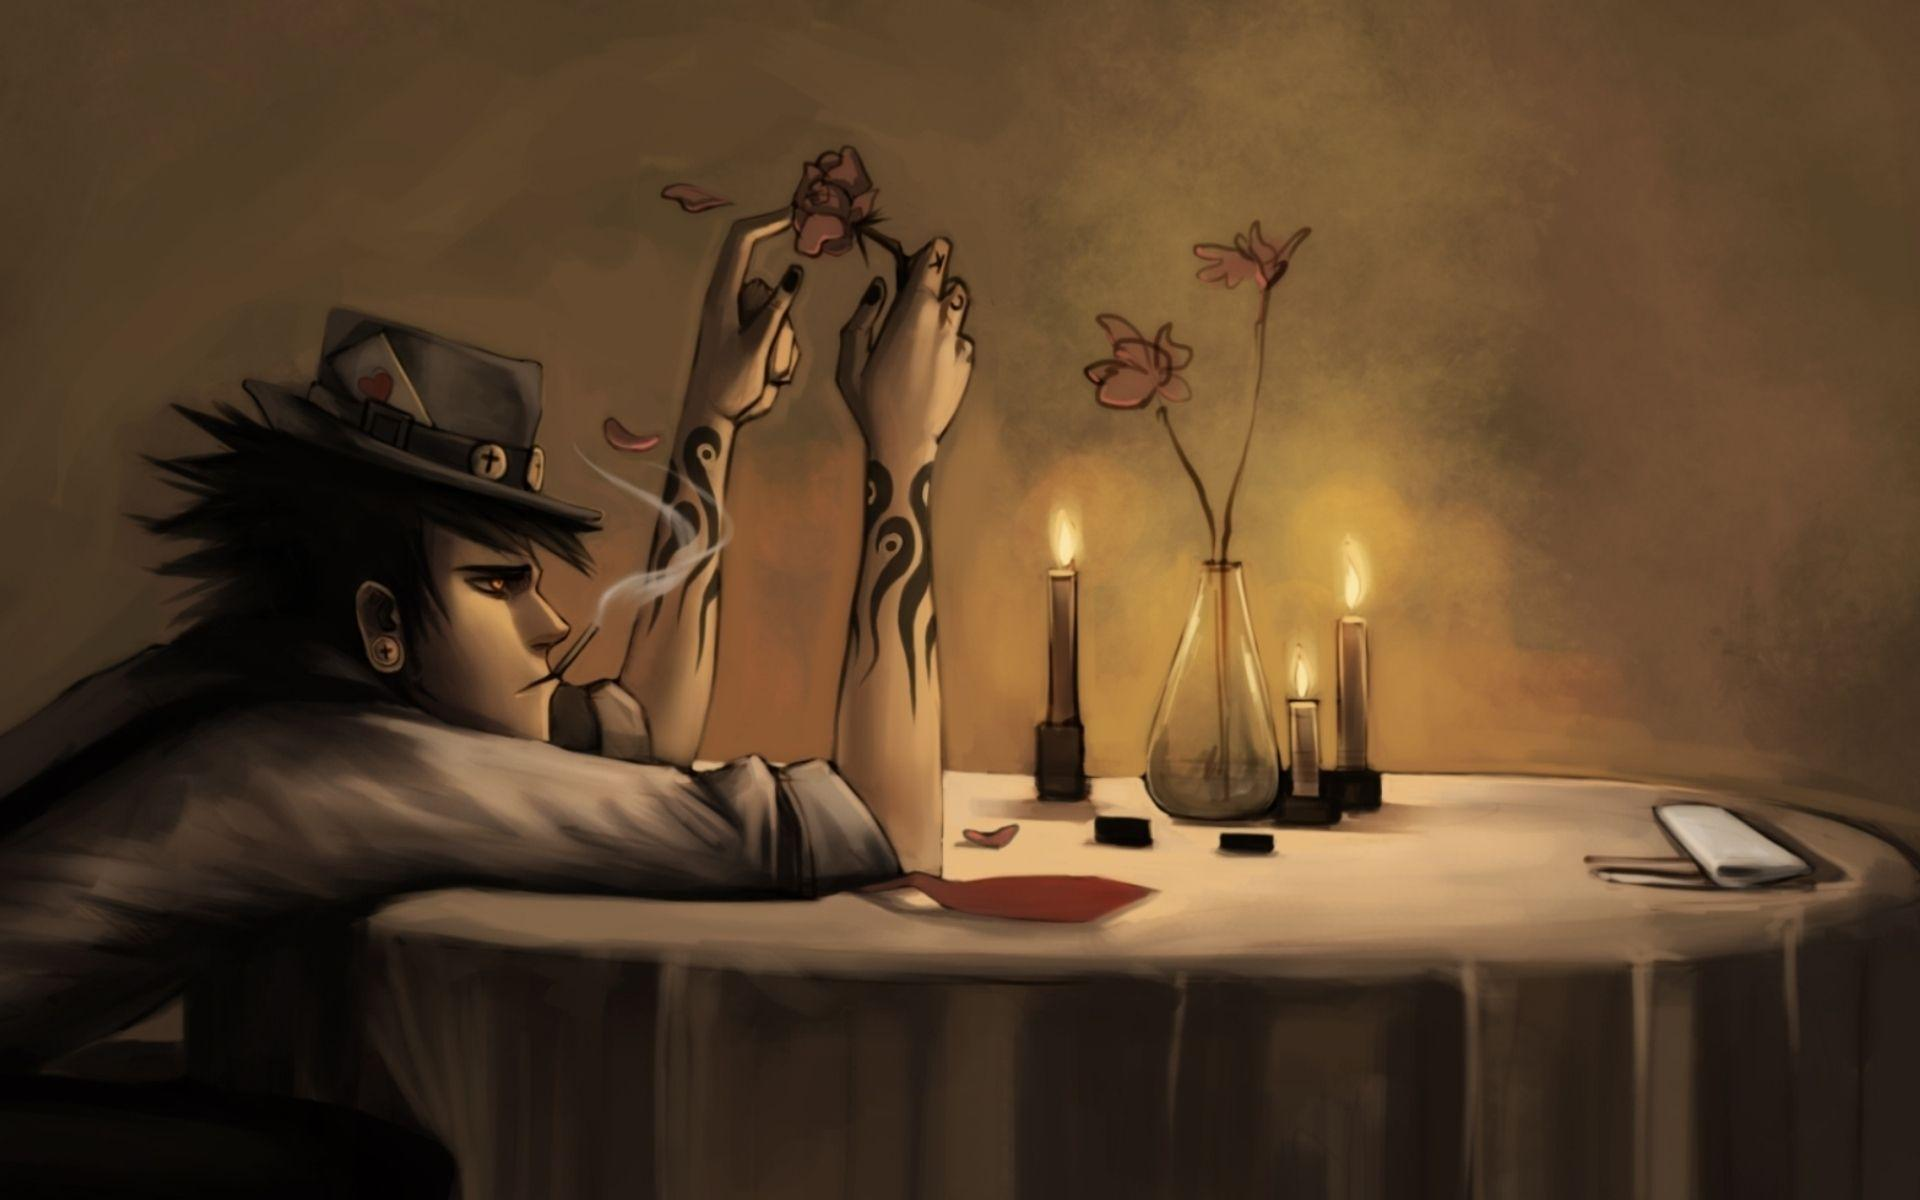 Download Wallpaper 1920x1200 Art, Guy, Table, Depression 1920x1200 ...